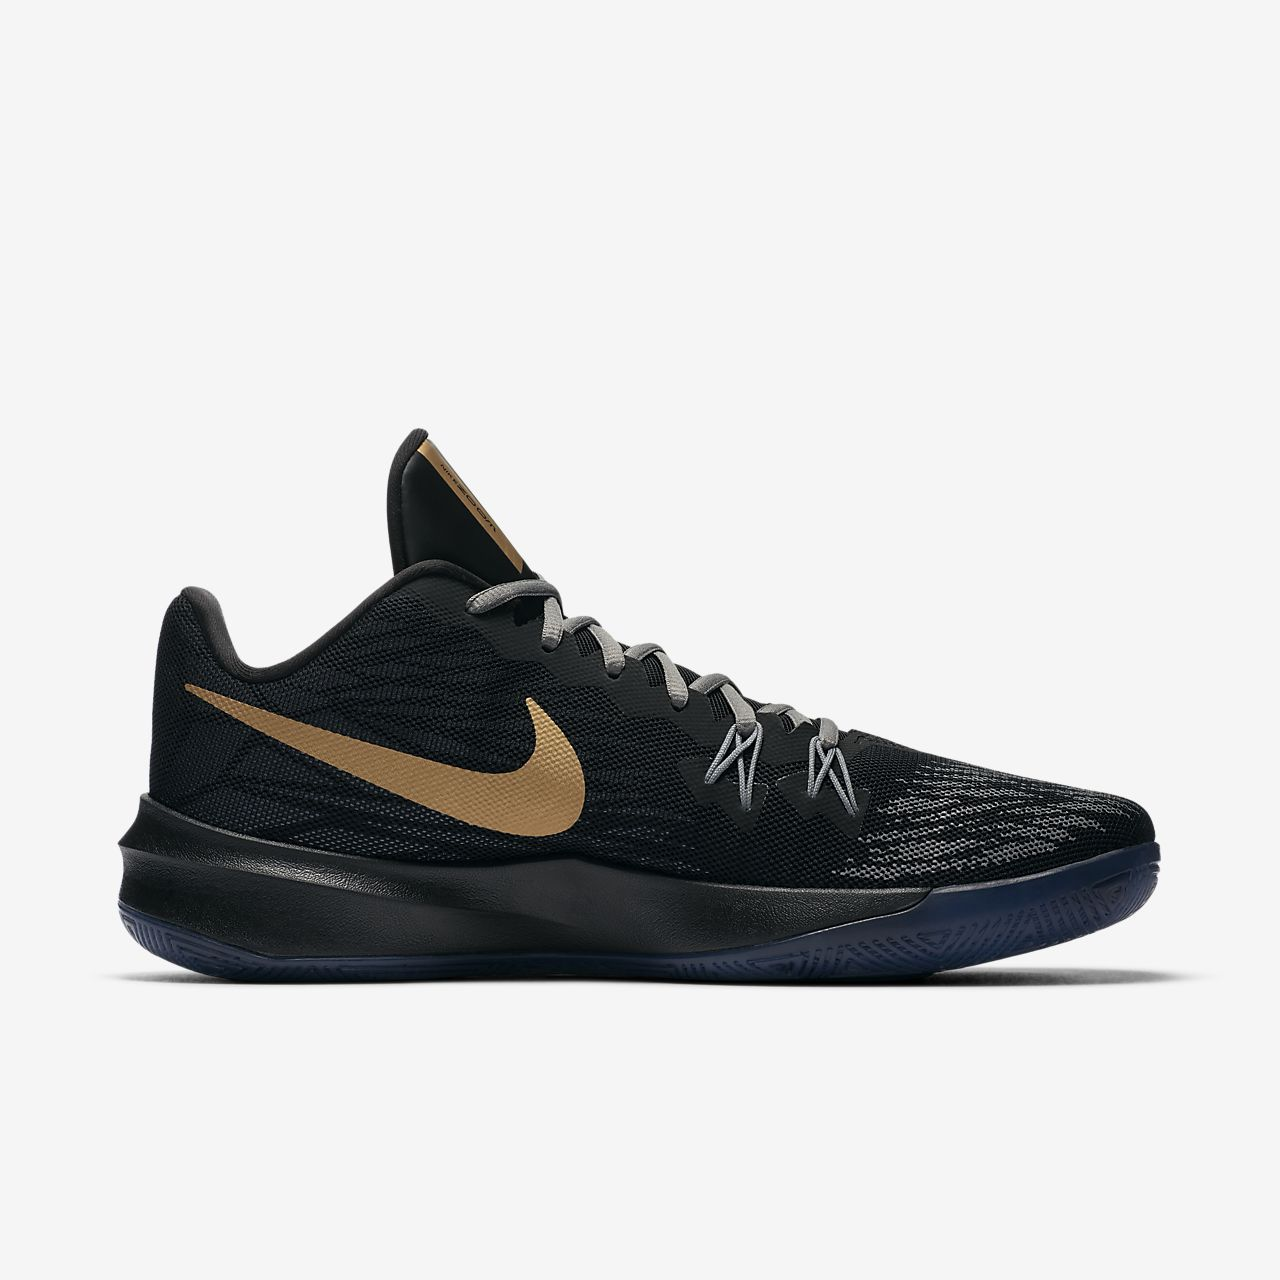 cheap excellent free shipping outlet store Nike Zoom Evidence II Men's ... Basketball Shoes discount wide range of best store to get cheap price ZbZ1uii